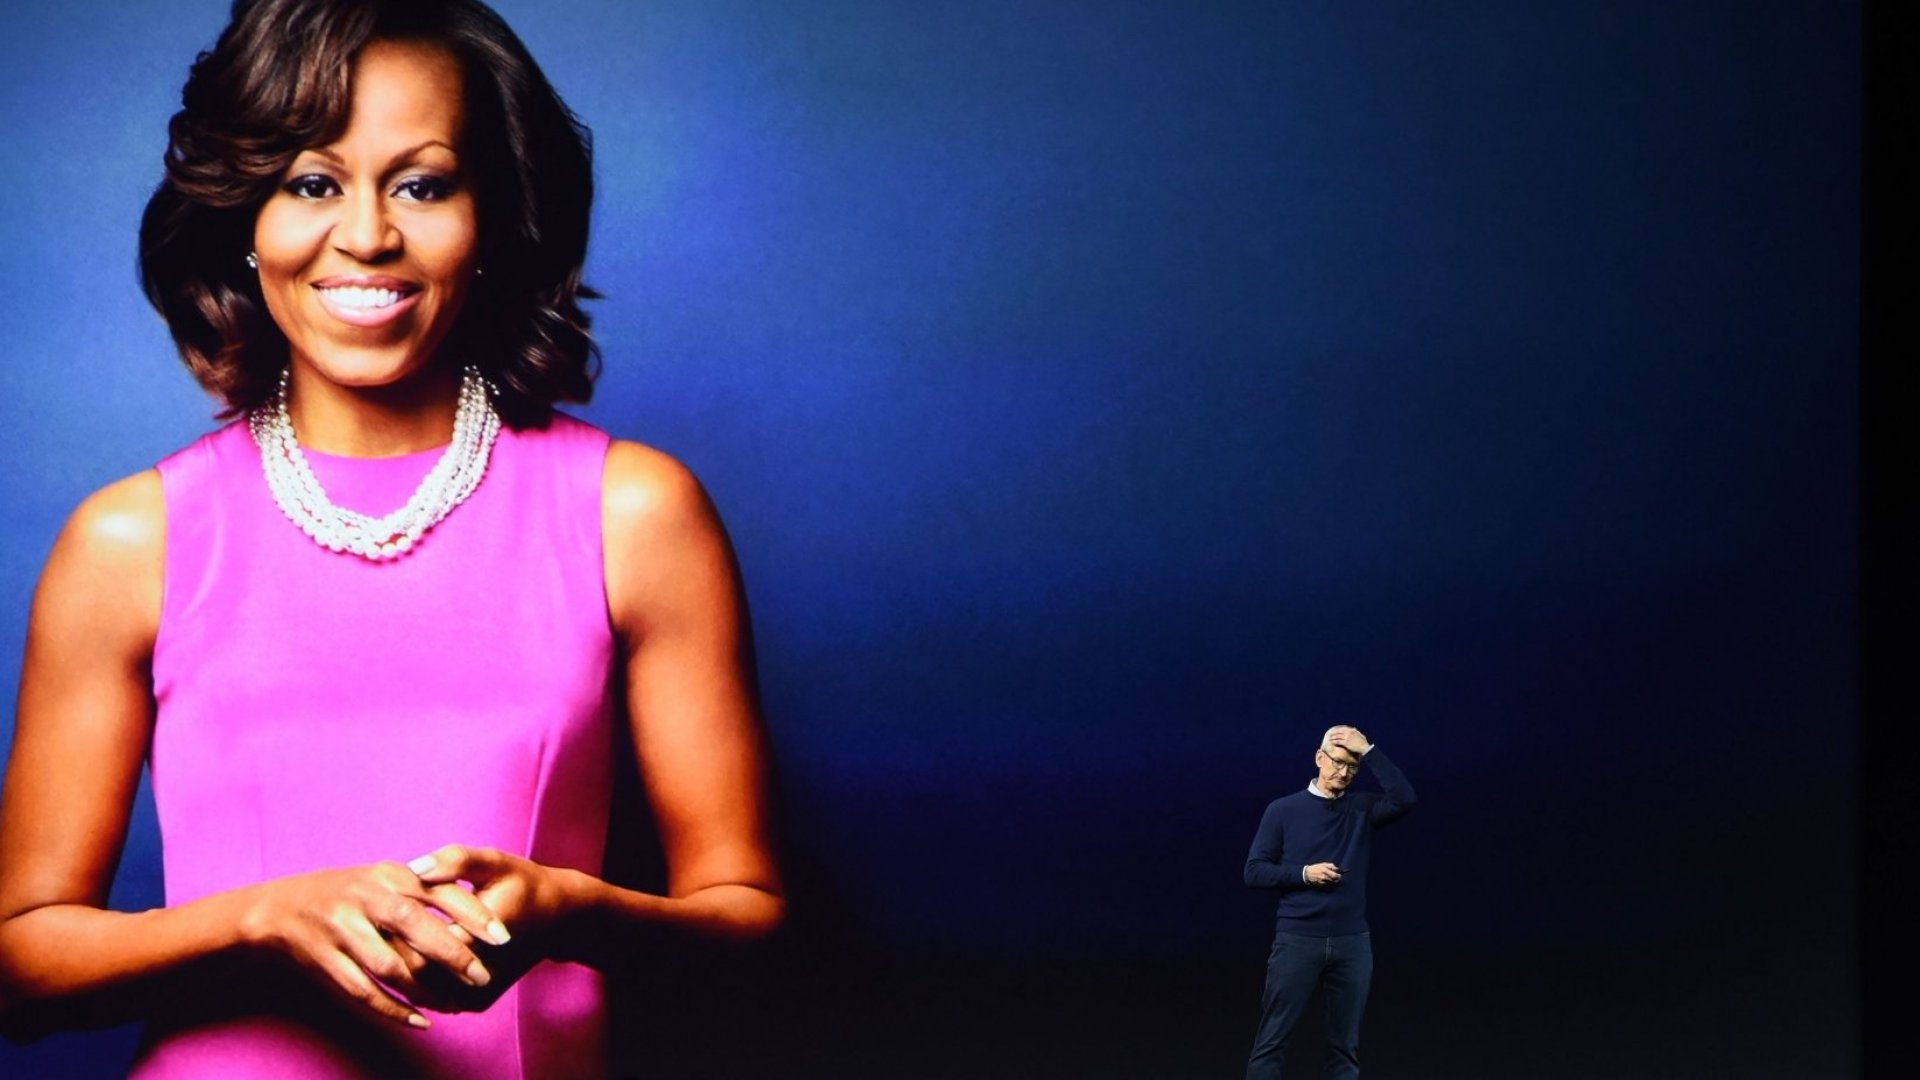 Apple CEO Tim Cook announcing Michelle Obama's surprise appearance at the Worldwide Developer Conference (WWDC)